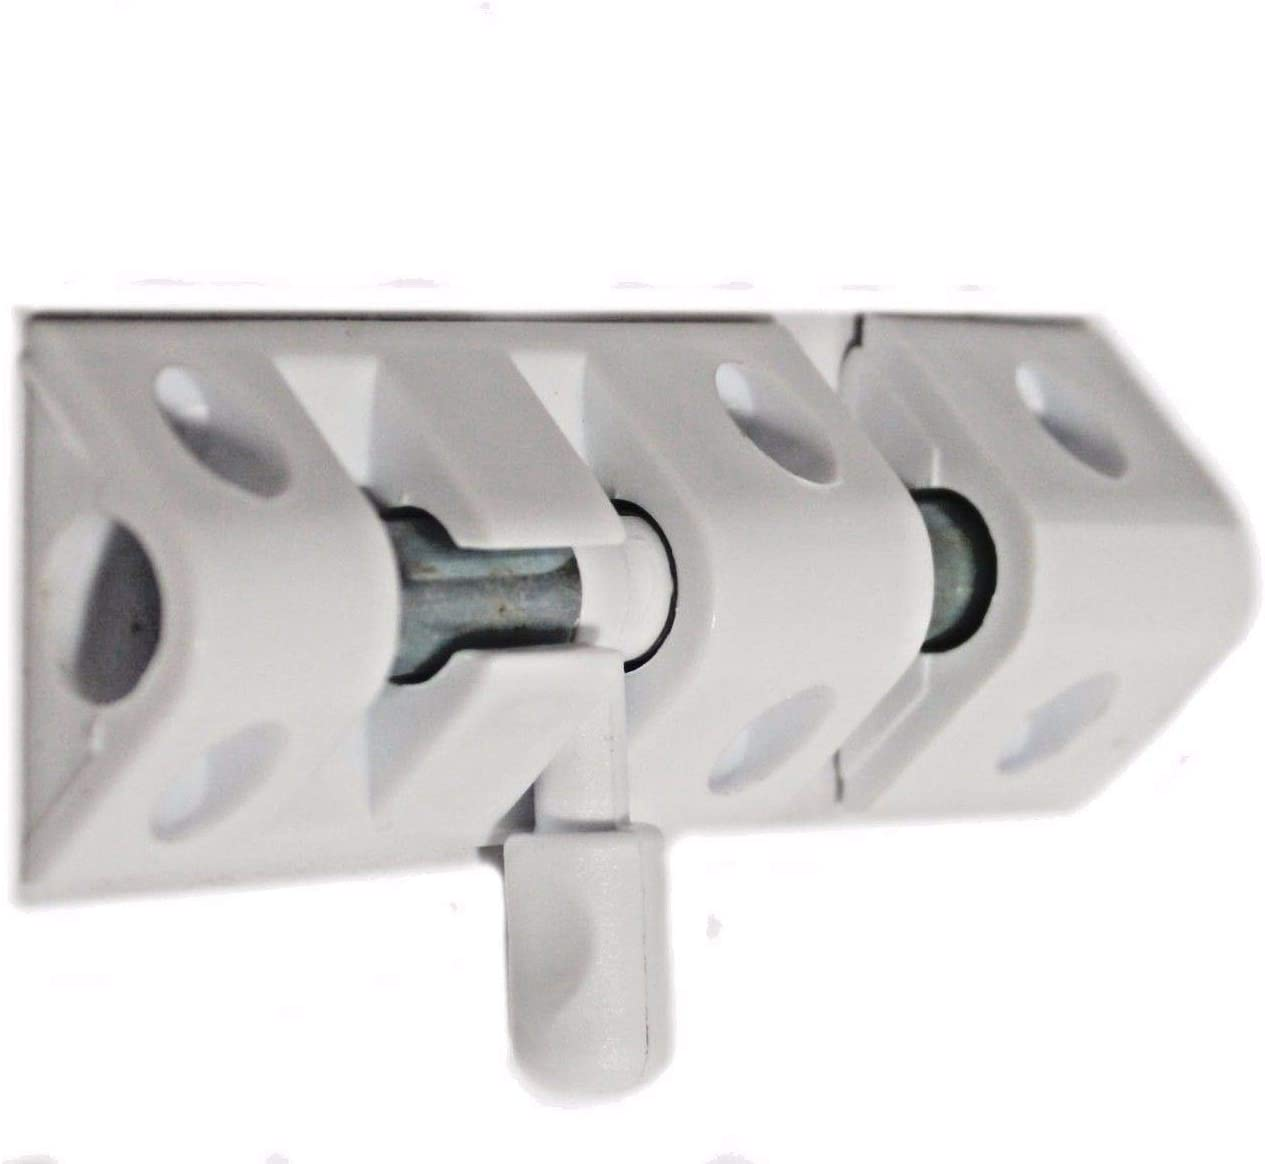 NEW Glide Bolt WHITE 75mm Perfect for Doors INDOOR Simple Security NEW!